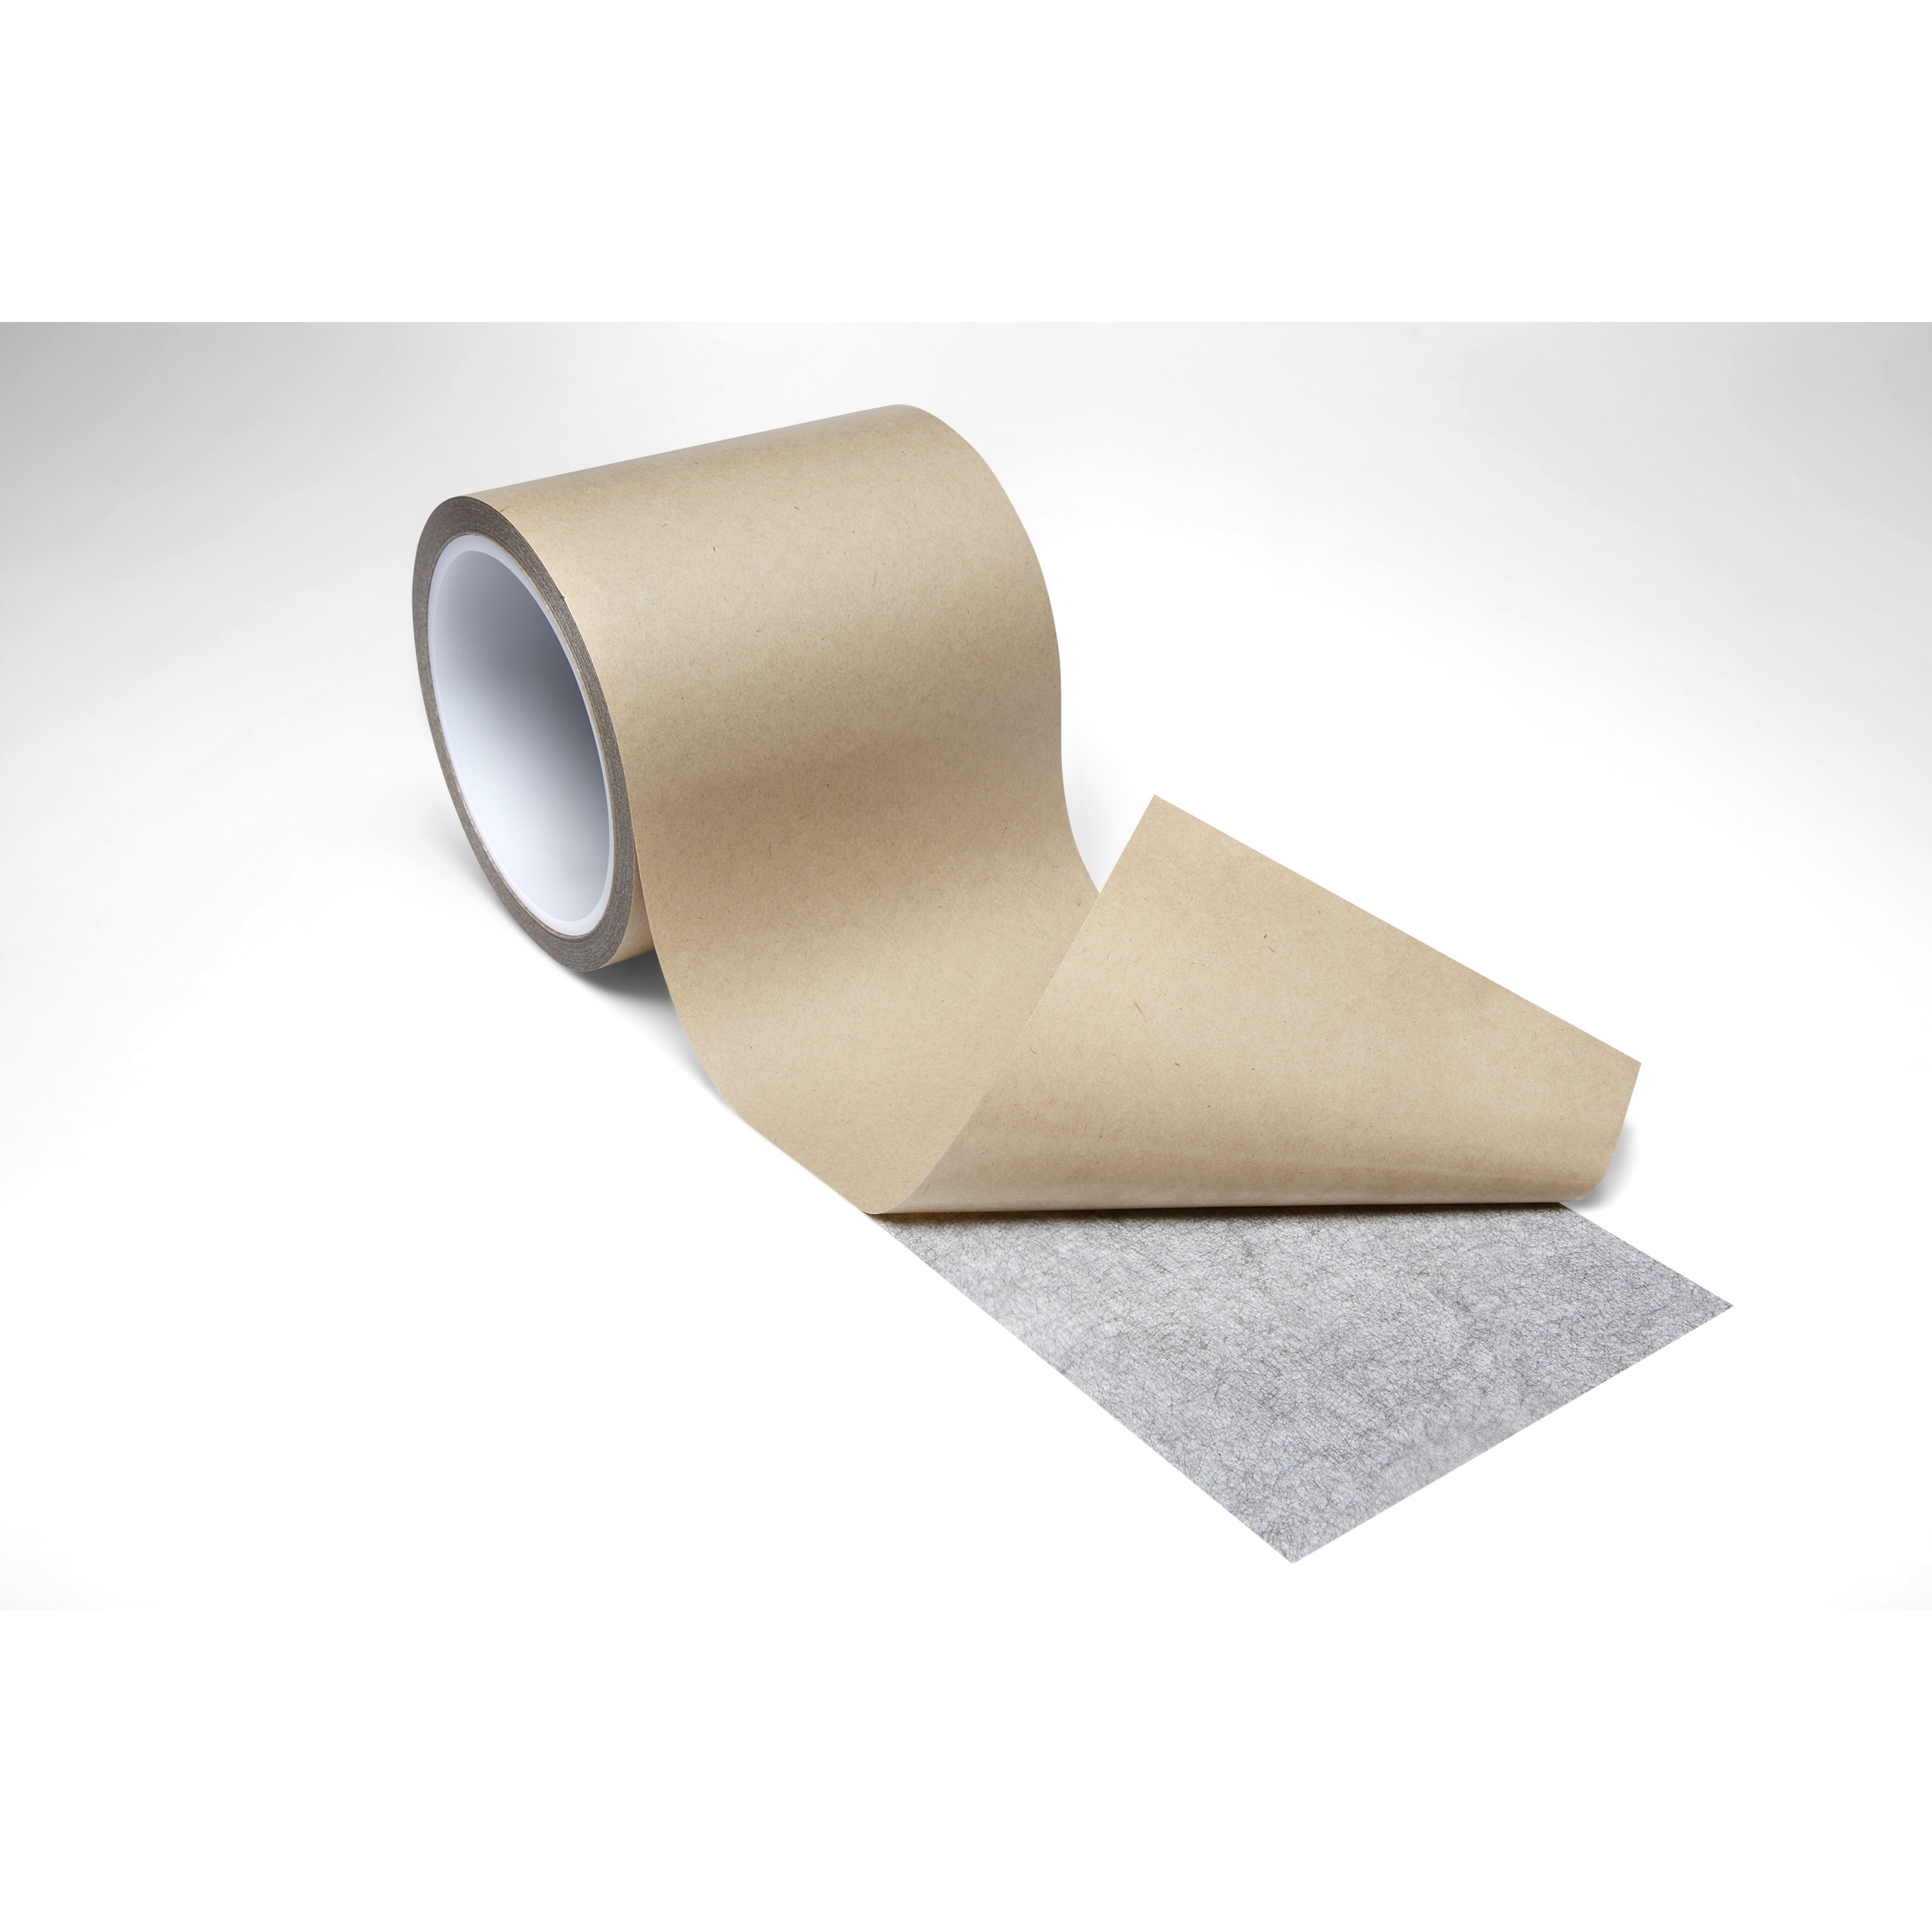 3M™ Electrically Conductive Adhesive Transfer Tape 9713, 4 in x 10 yd, 6/Case, Sample